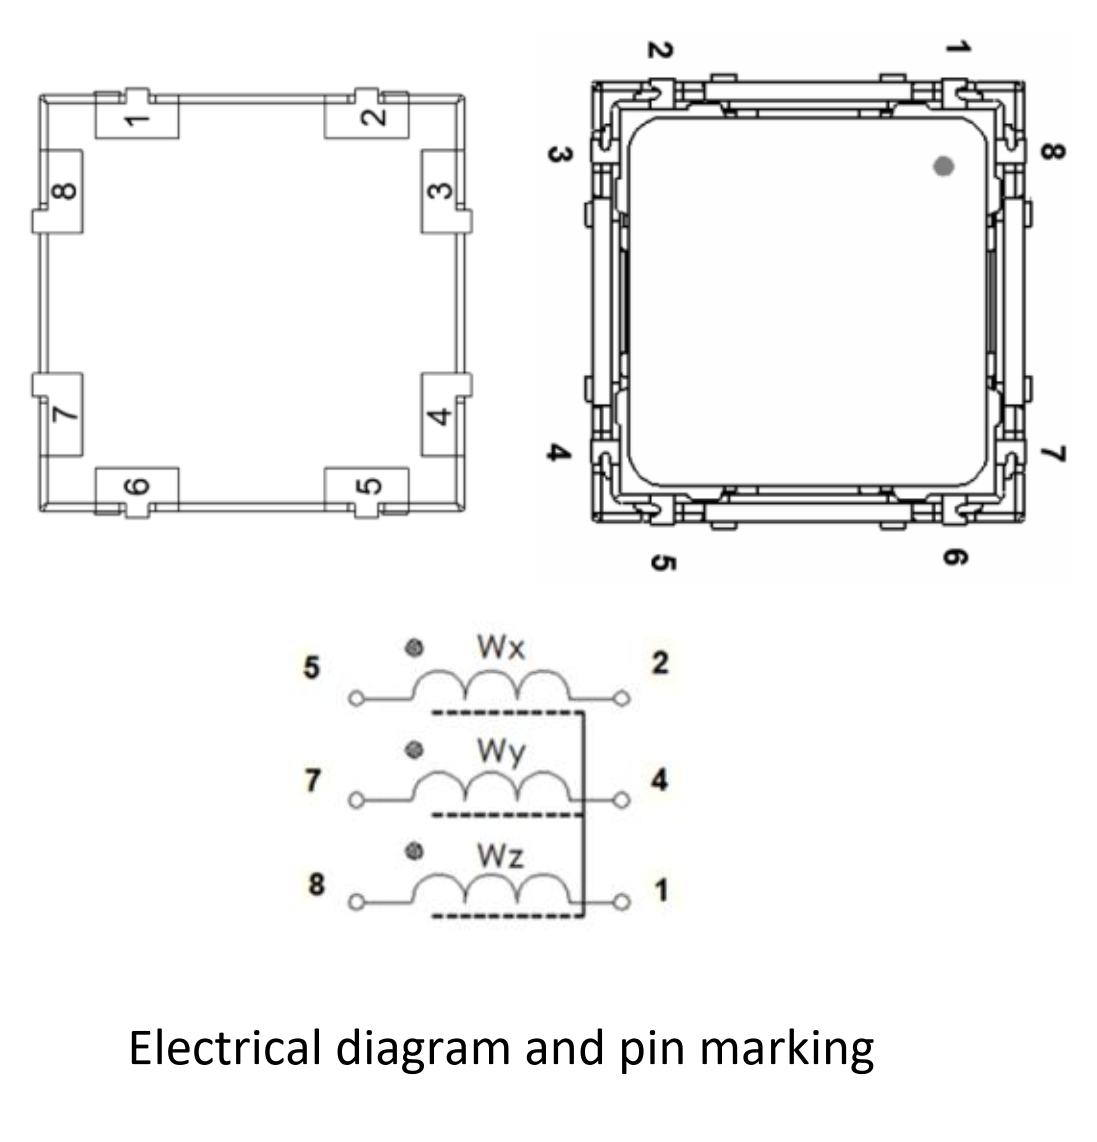 3DC13S electrical diagram